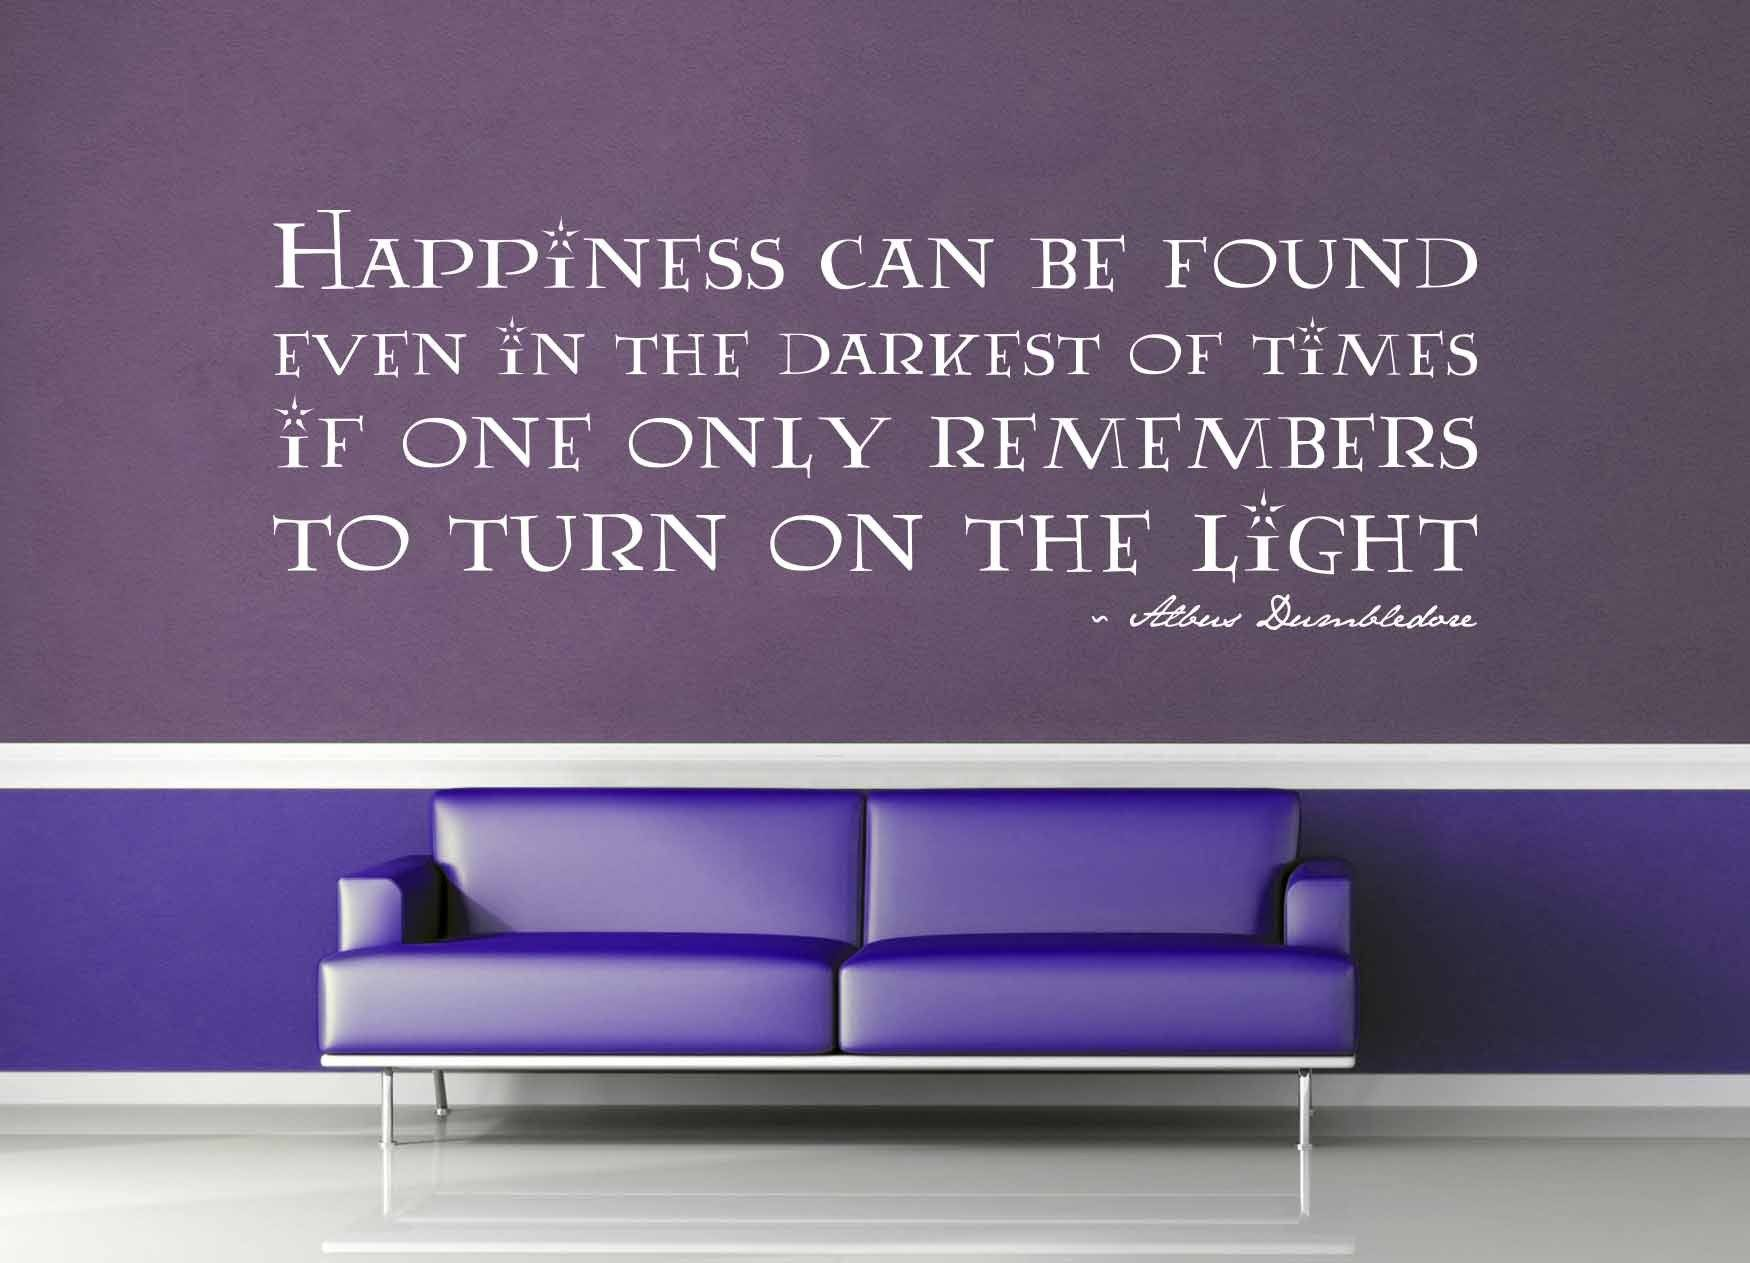 Happiness Can Be Found - Harry Potter Quote - Wall Decal - No 1